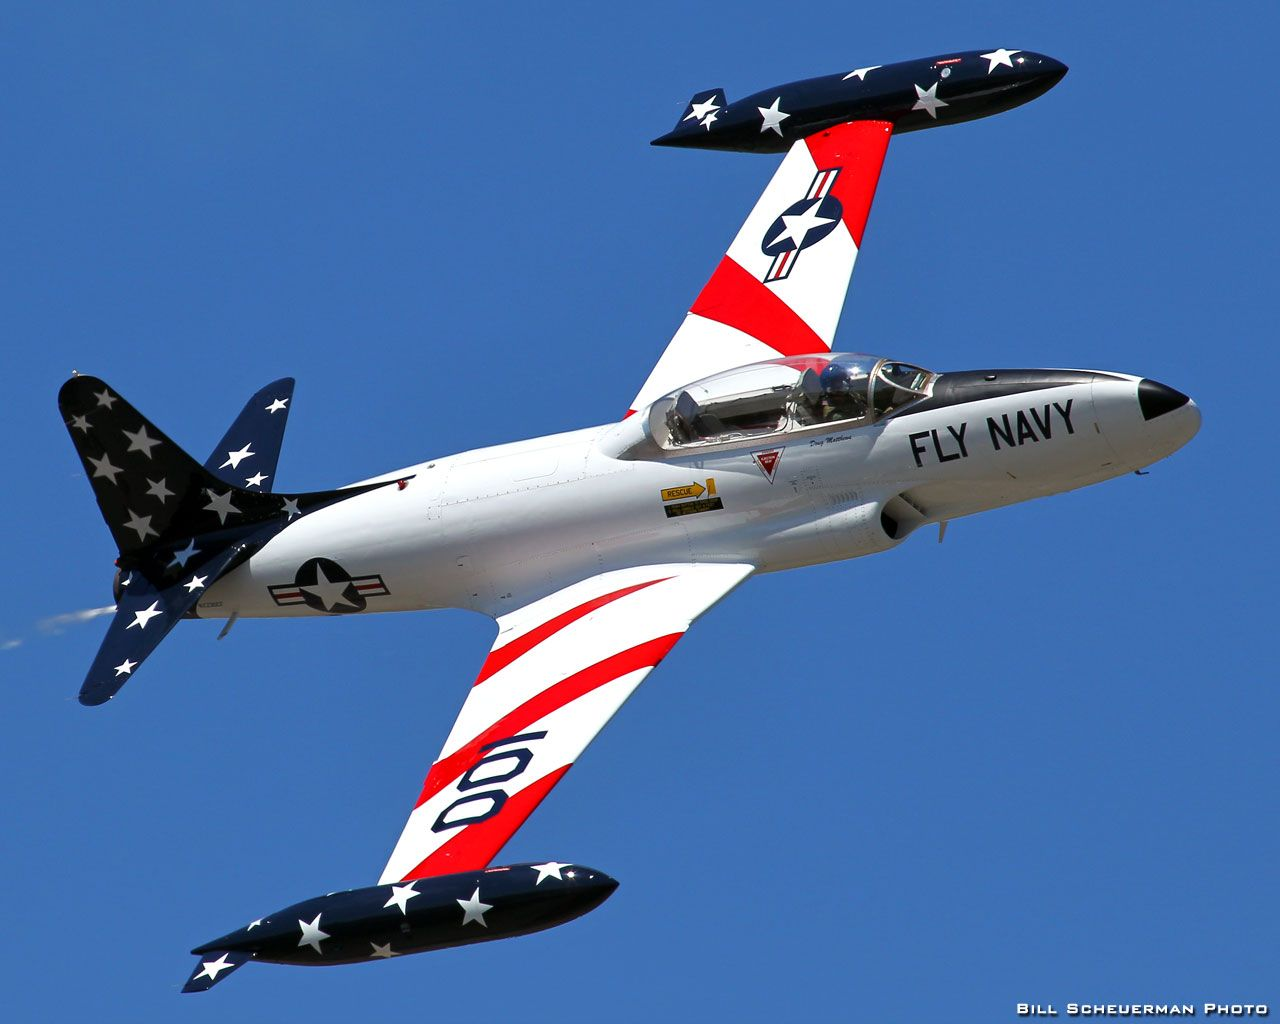 Doug Matthews flies this beautifully restored Lockheed/Canadair T-33 Silver Star. The T-33 was one of the most widely used jet trainers in the world. A two-seat version of the USAF's first jet fighter, the F-80 Shooting Star, the T-33 continues to serve in various armed forces today.